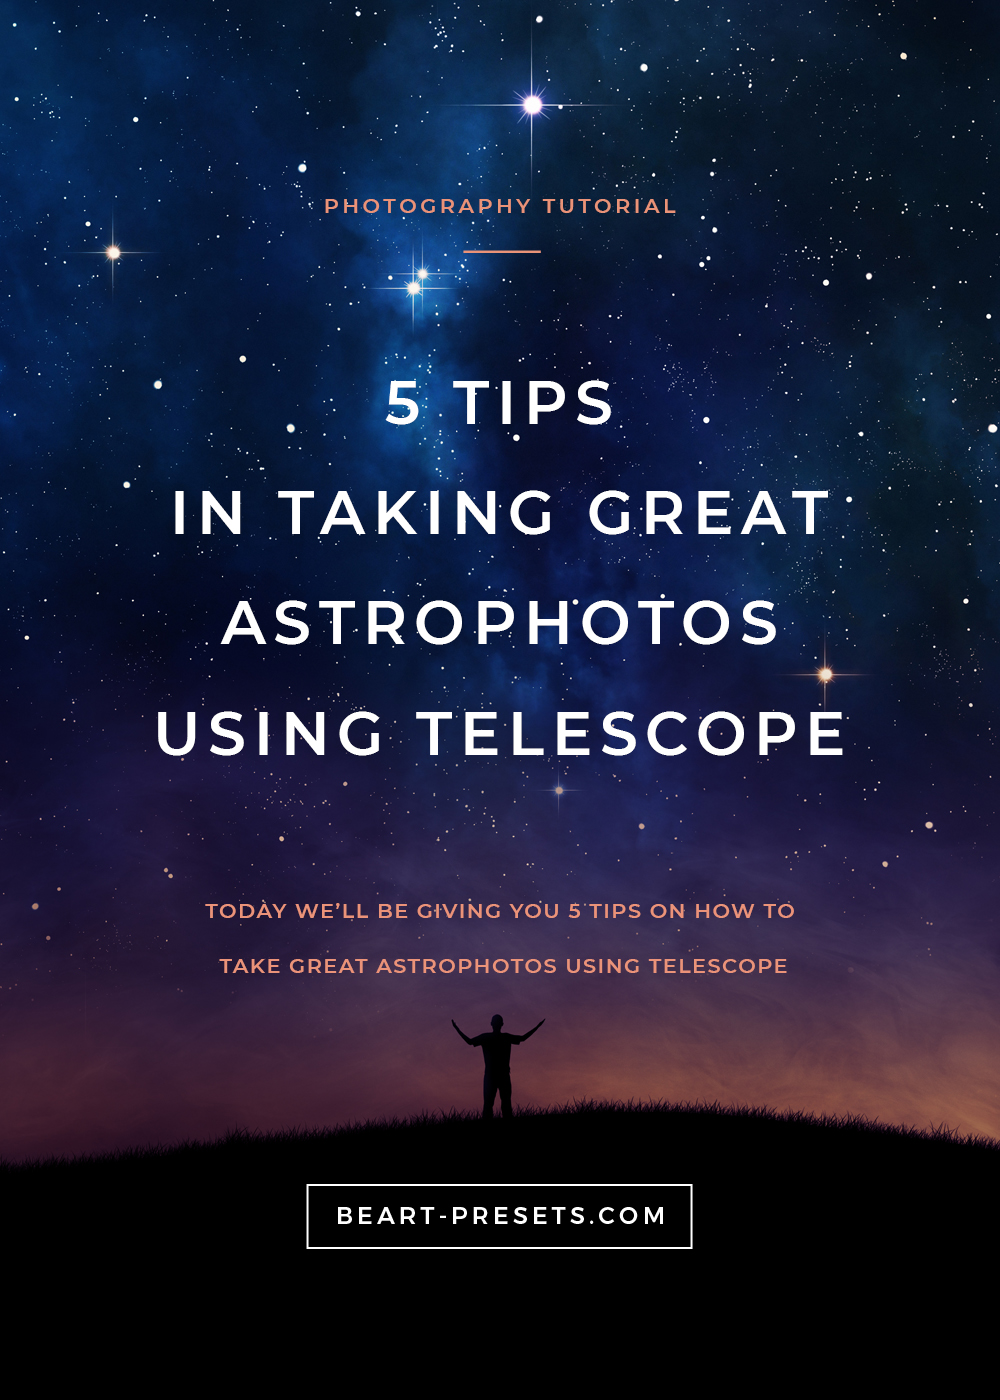 5 TIPS IN TAKING GREAT ASTROPHOTOS USING TELESCOPE